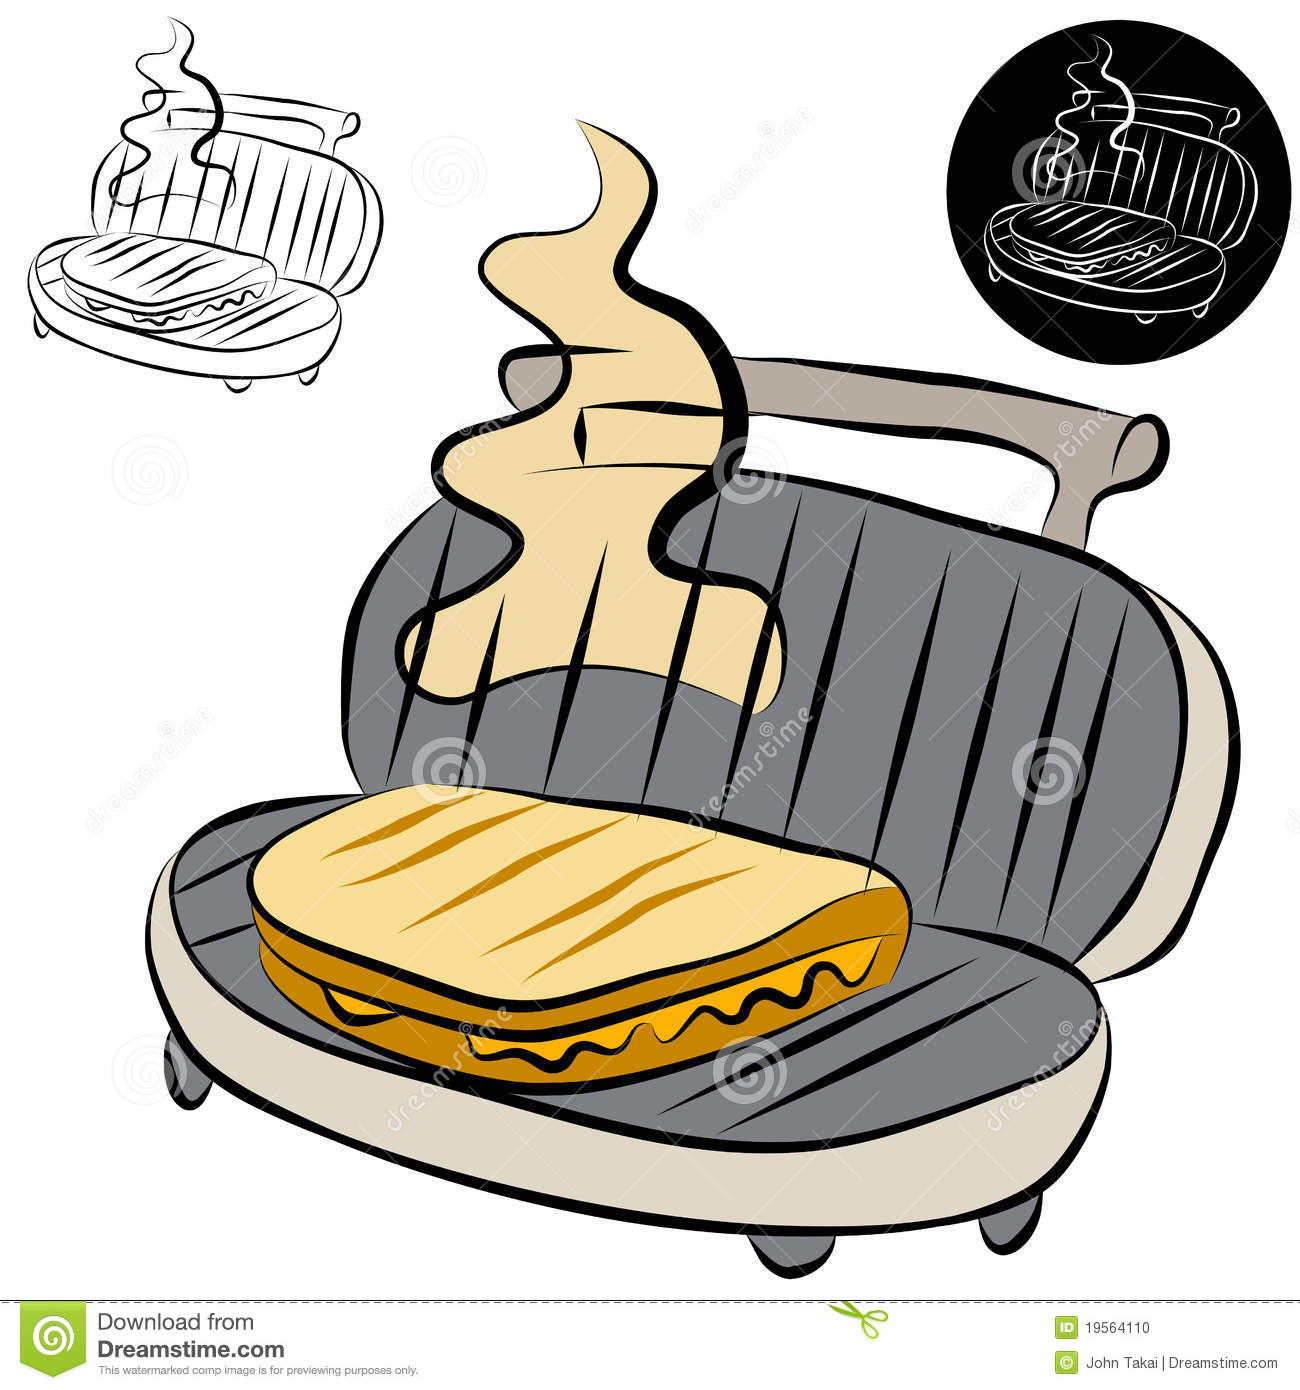 Line Drawing Maker : Panini press sandwich maker line drawing stock photo